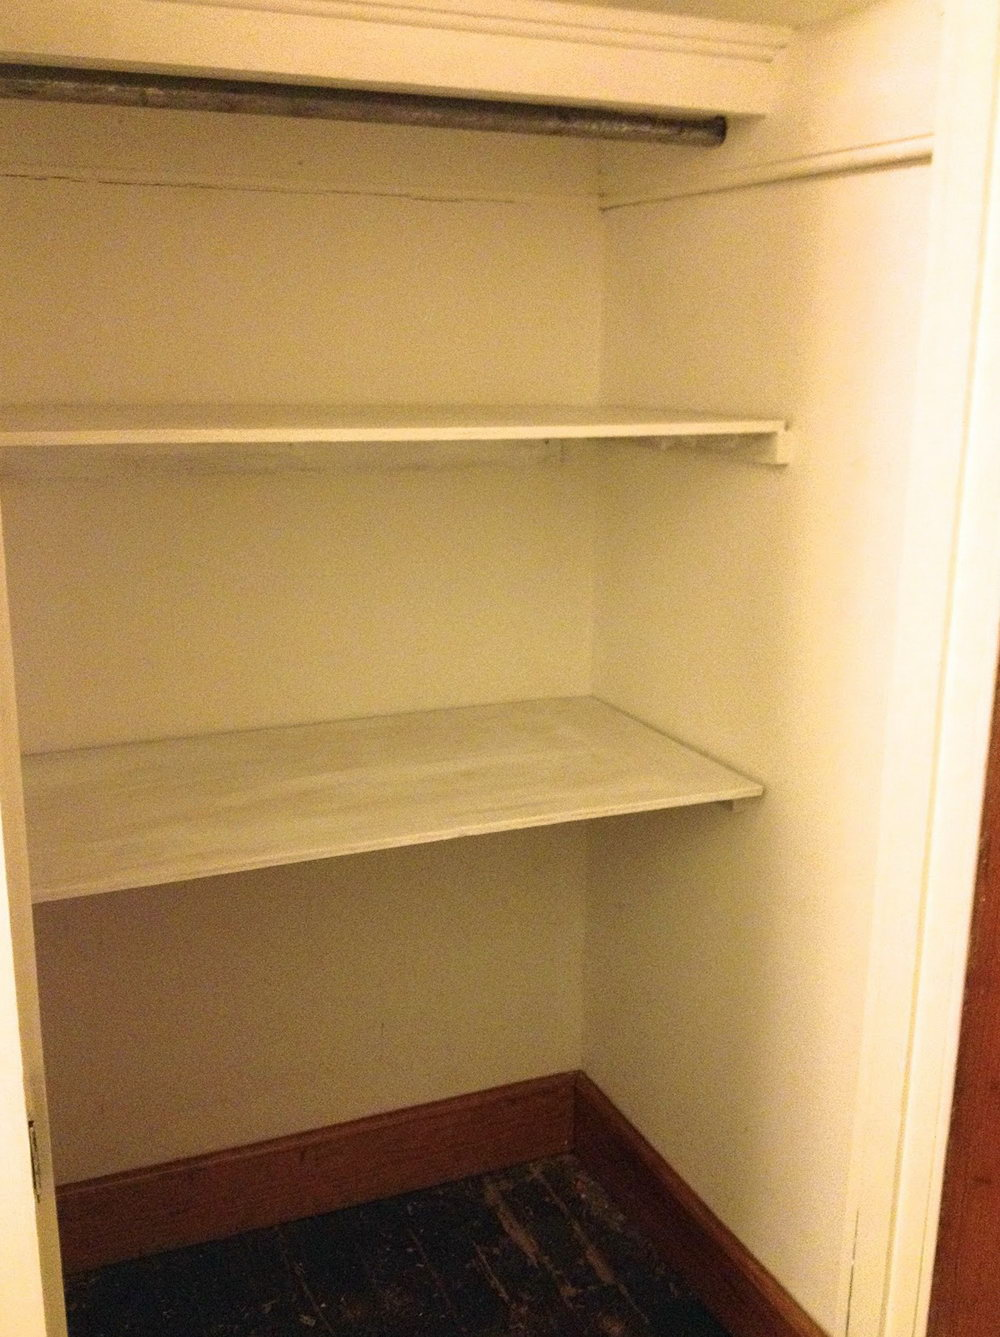 Building Closet Organizers With Plywood